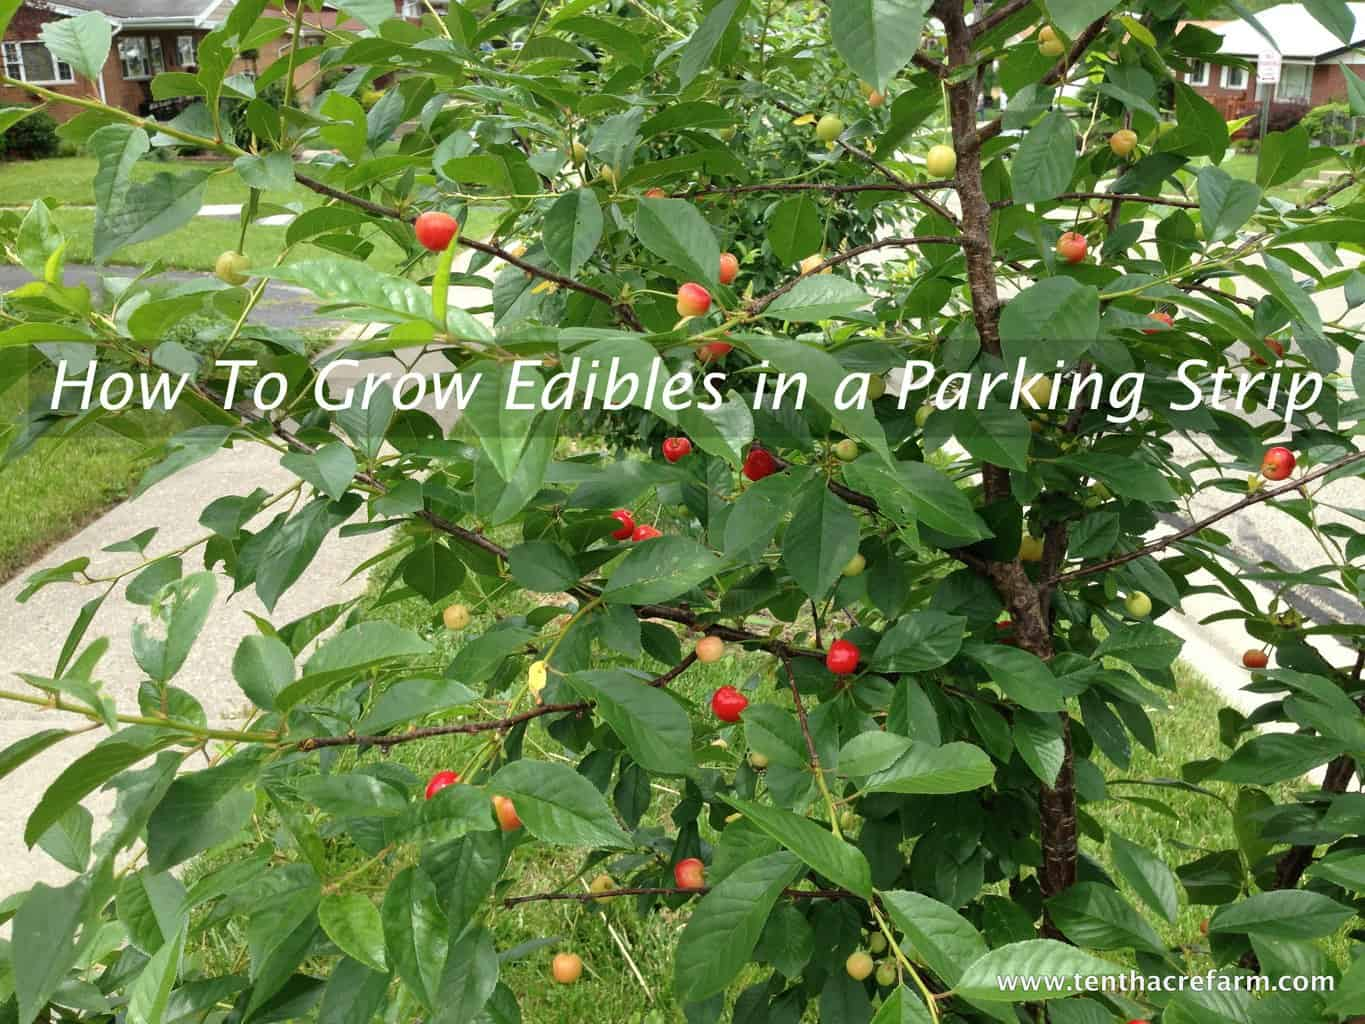 How To Grow Edibles in a Parking Strip